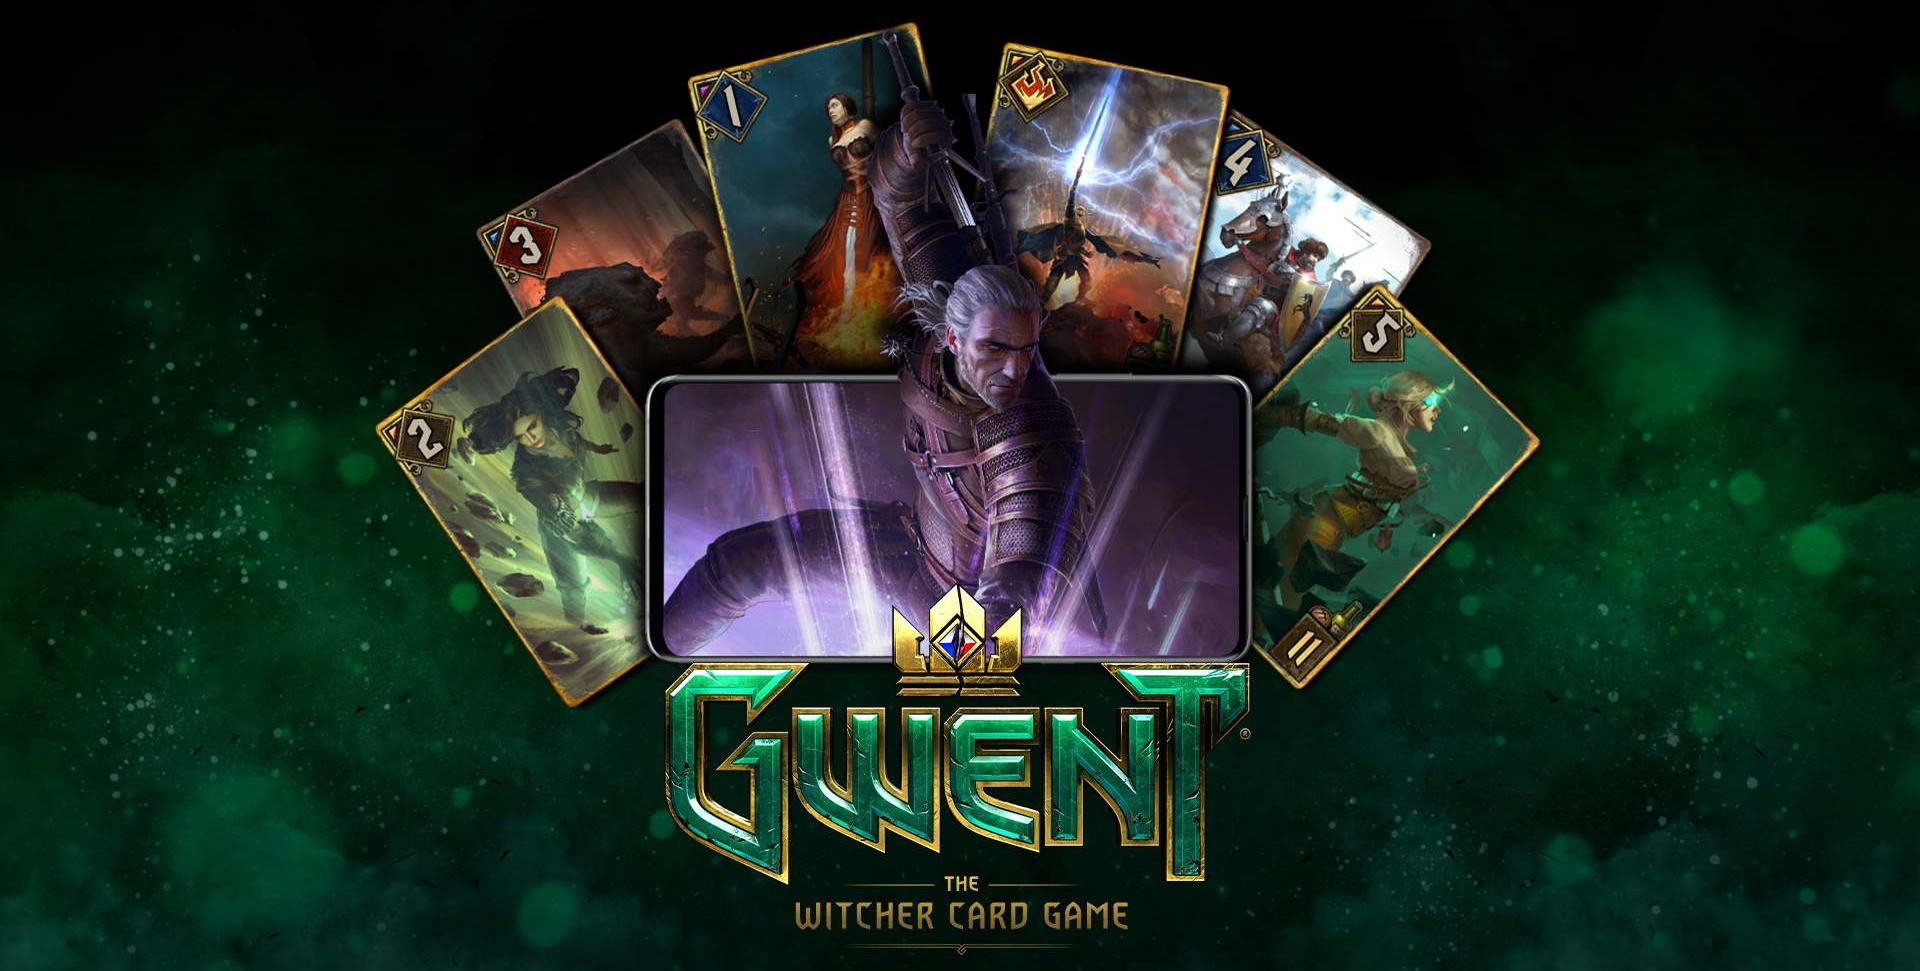 GWENT: The Witcher Card Game is now available for Android